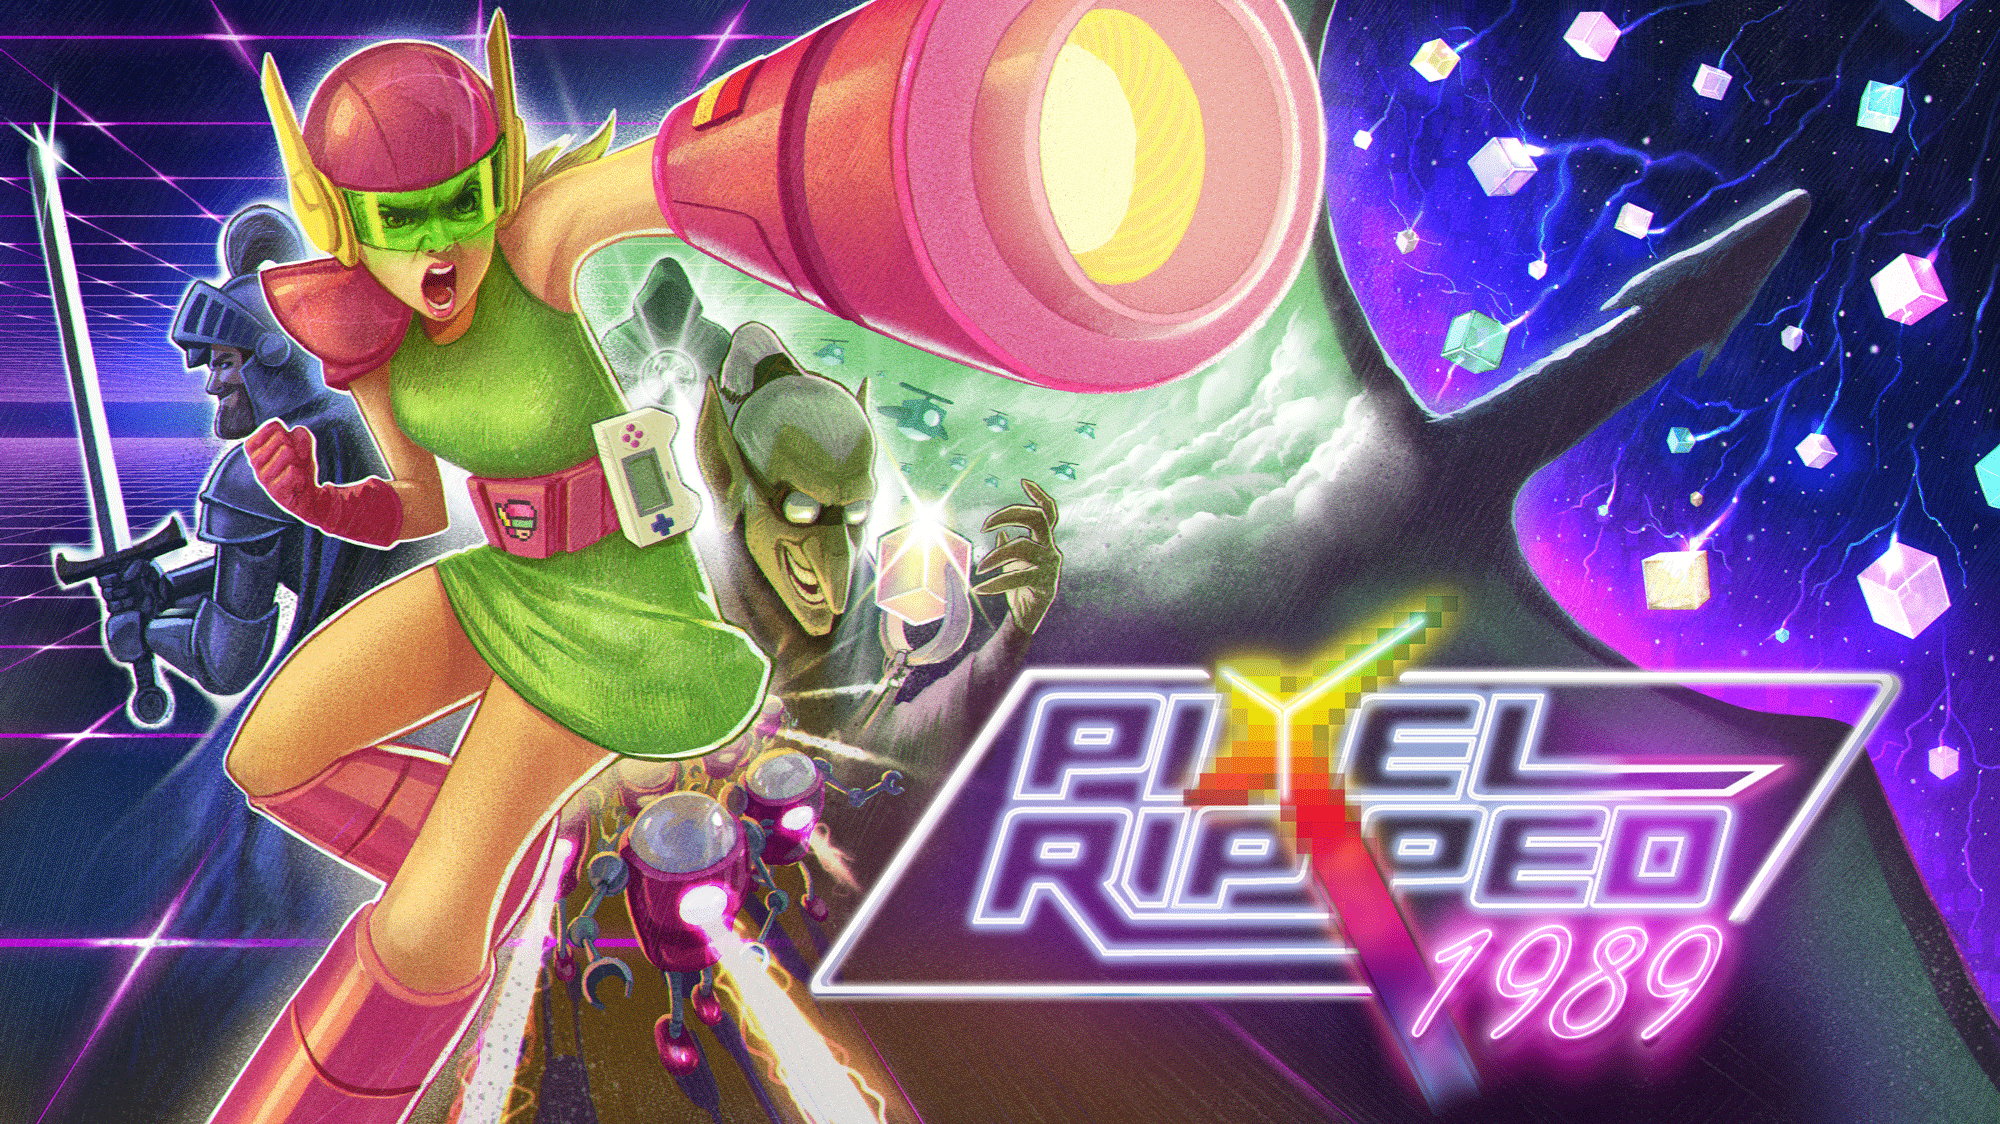 poster_pixelripped__1_.png